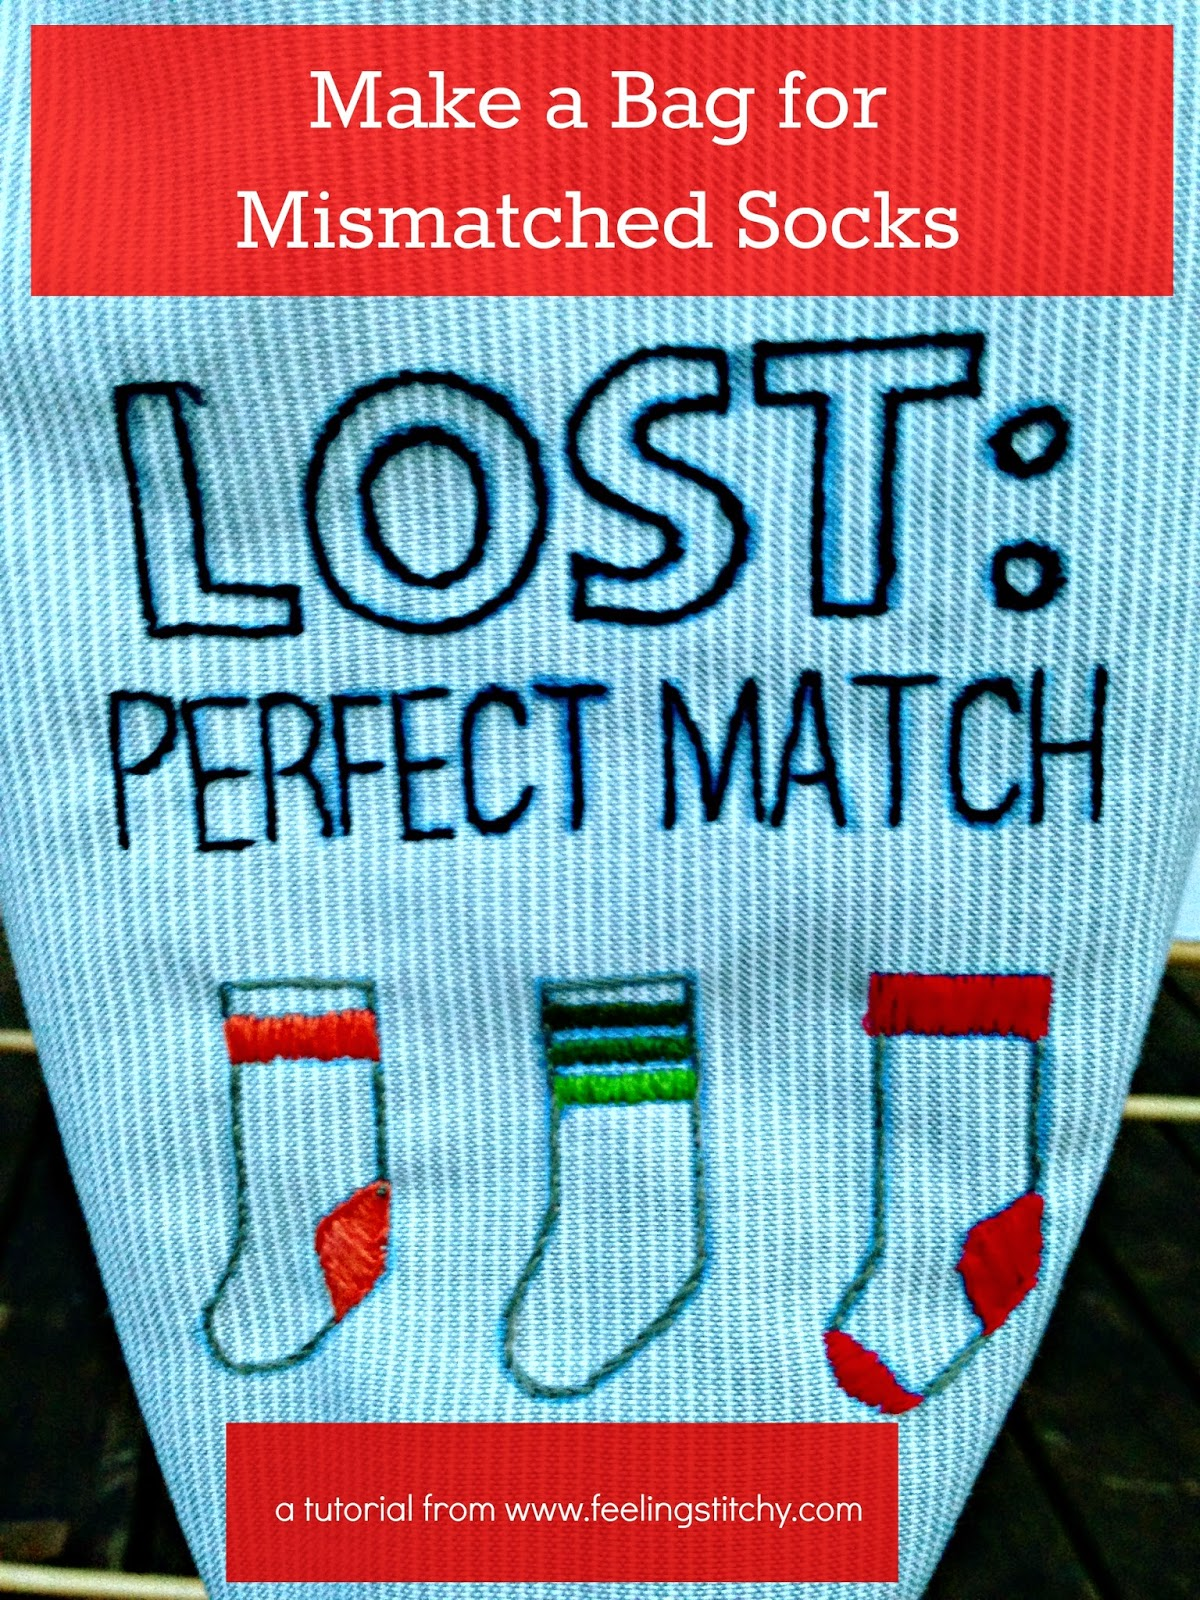 make a bag for mismatched socks | www.feelingstitchy.com